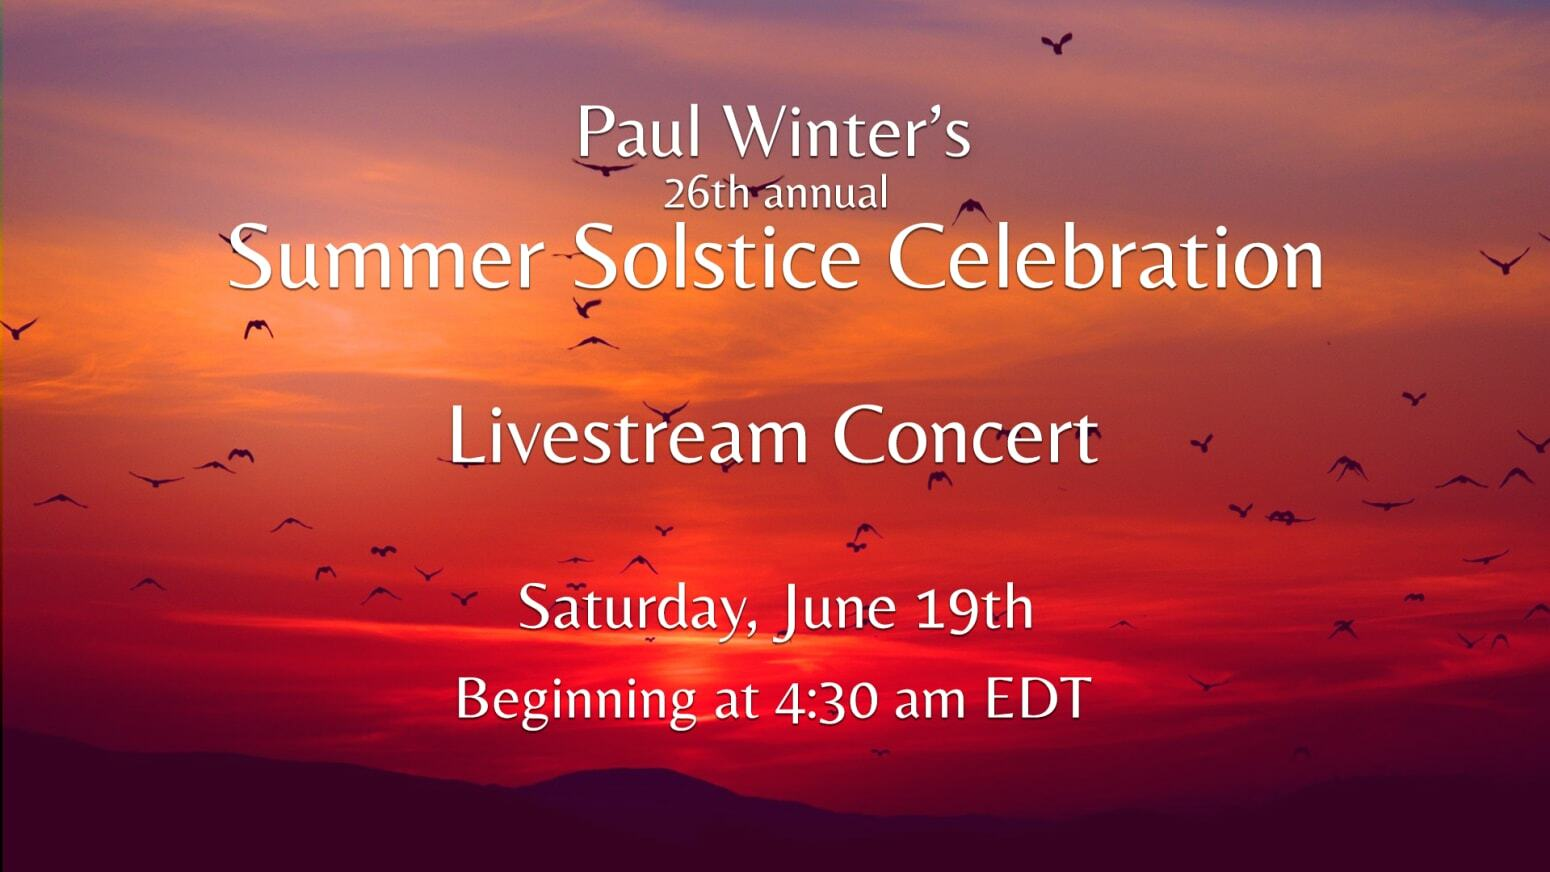 Paul Winter's 26th Annual Summer Solstice Celebration - Online